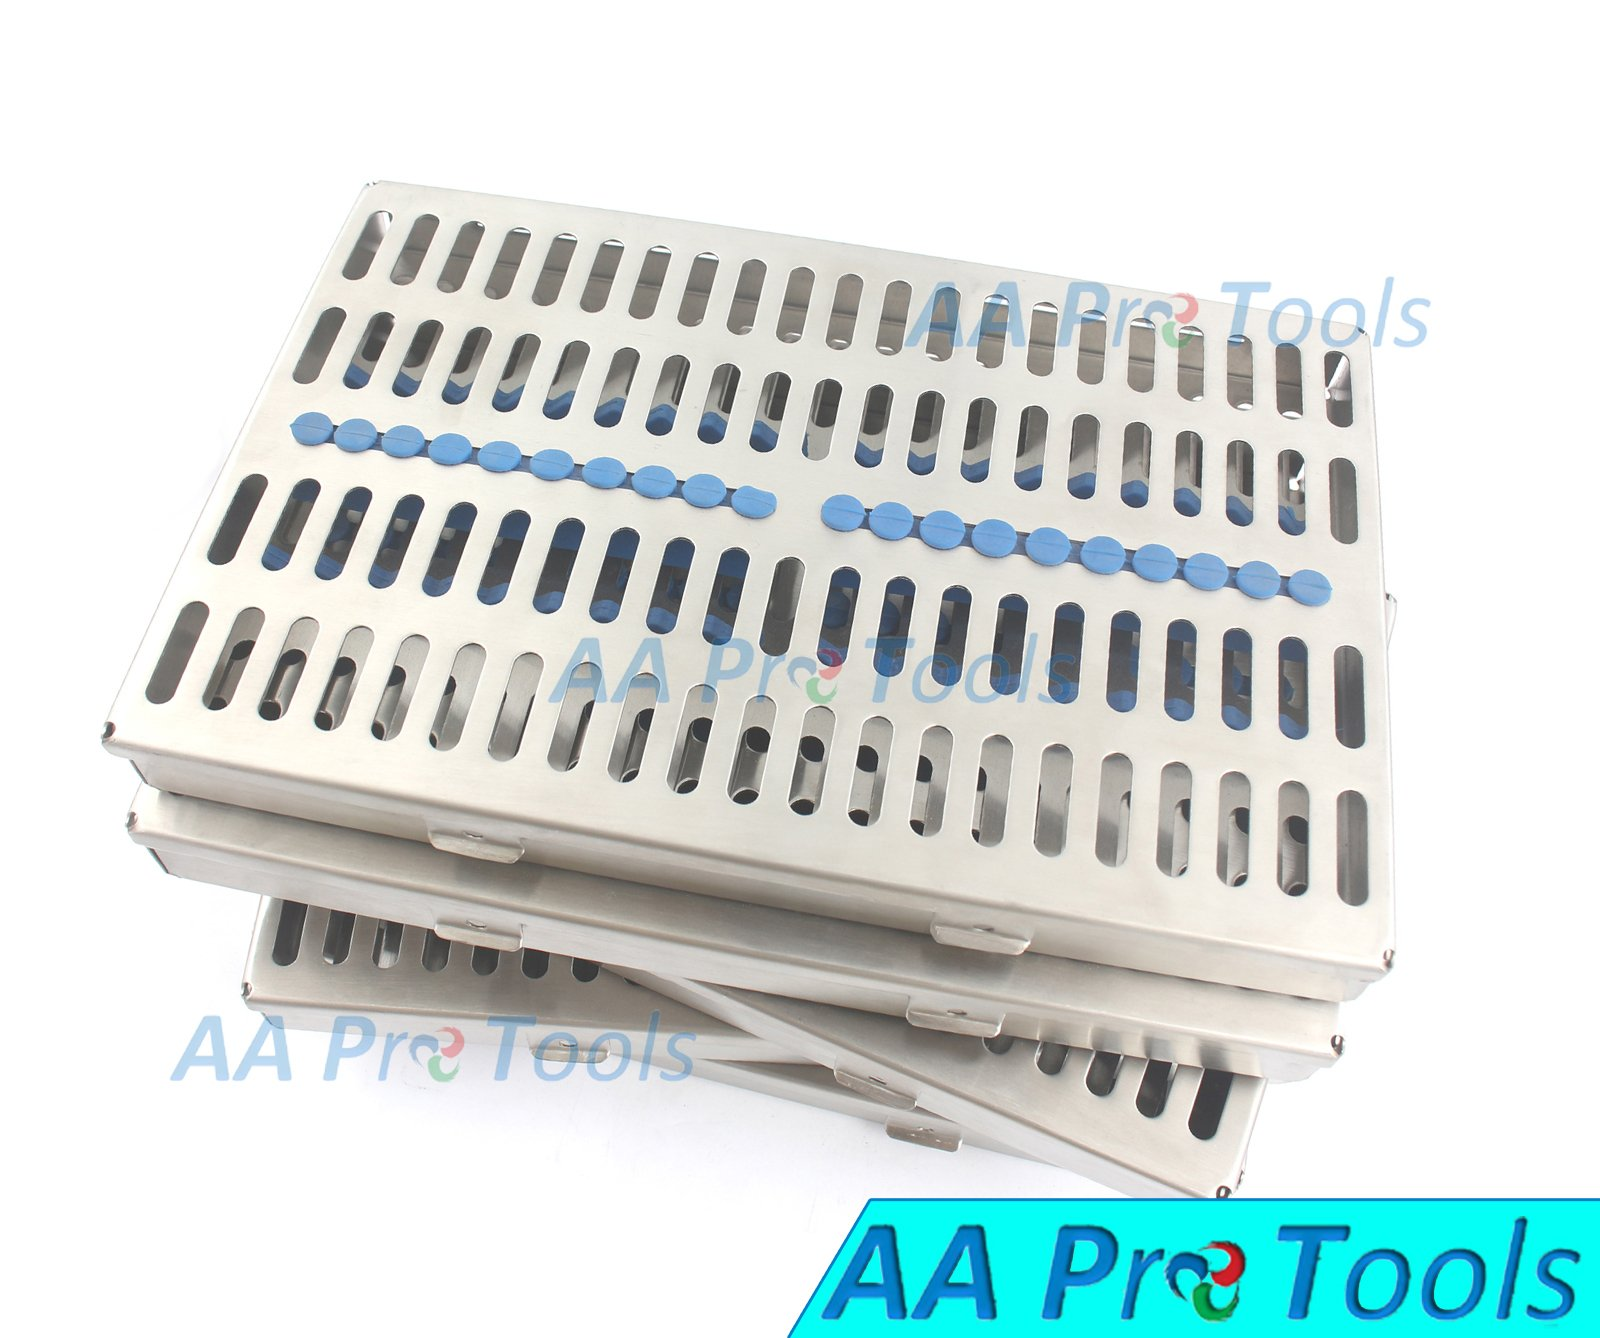 AA PRO GERMAN GRADE STEEL SET OF 5 EACH DENTAL AUTOCLAVE STERILIZATION CASSETTE RACK BOX TRAY FOR 20 INSTRUMENT A+ QUALITY